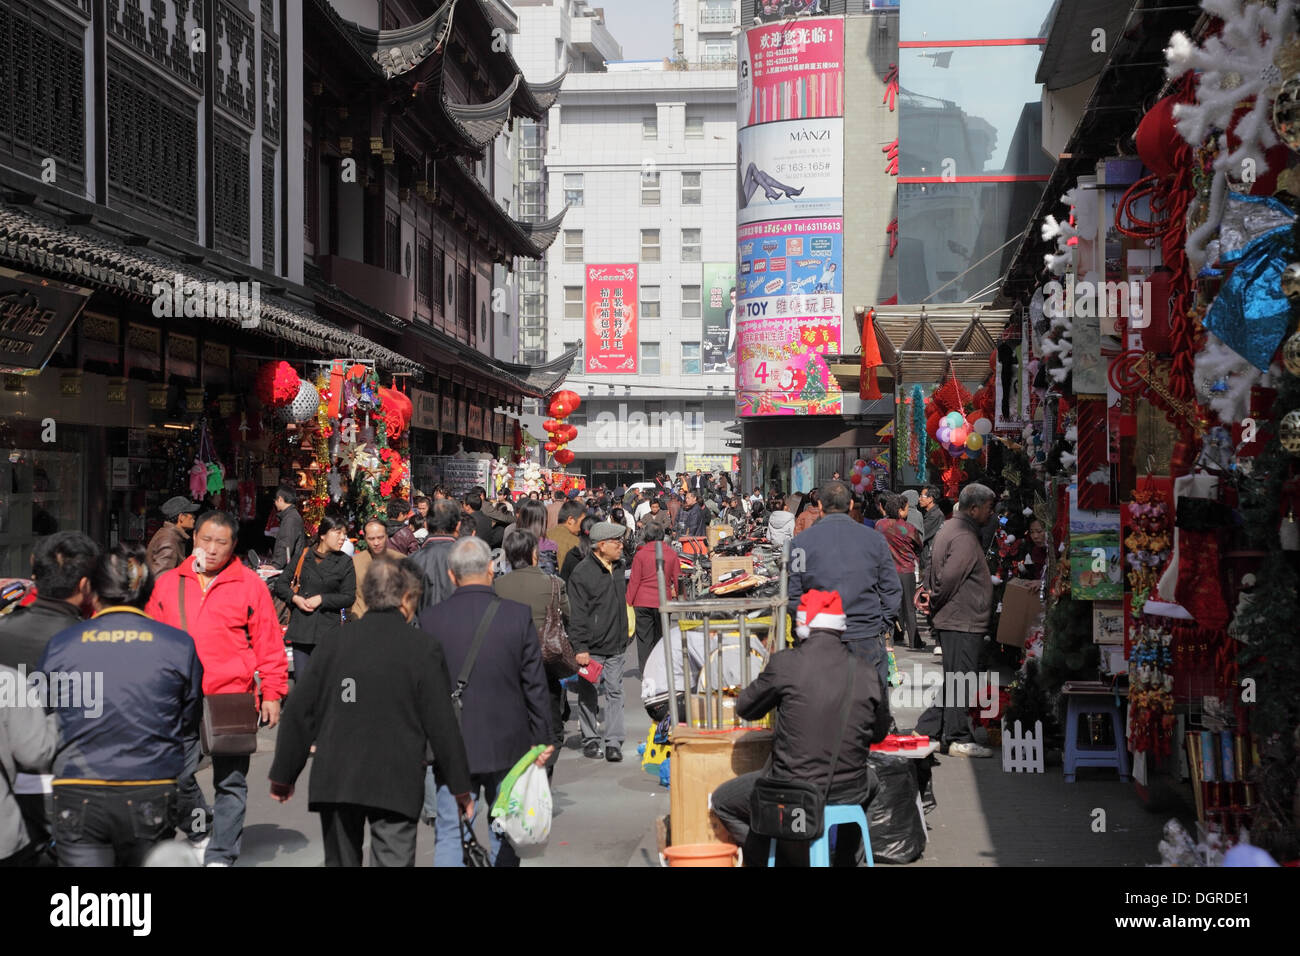 Busy street in the old town of Shanghai, China - Stock Image